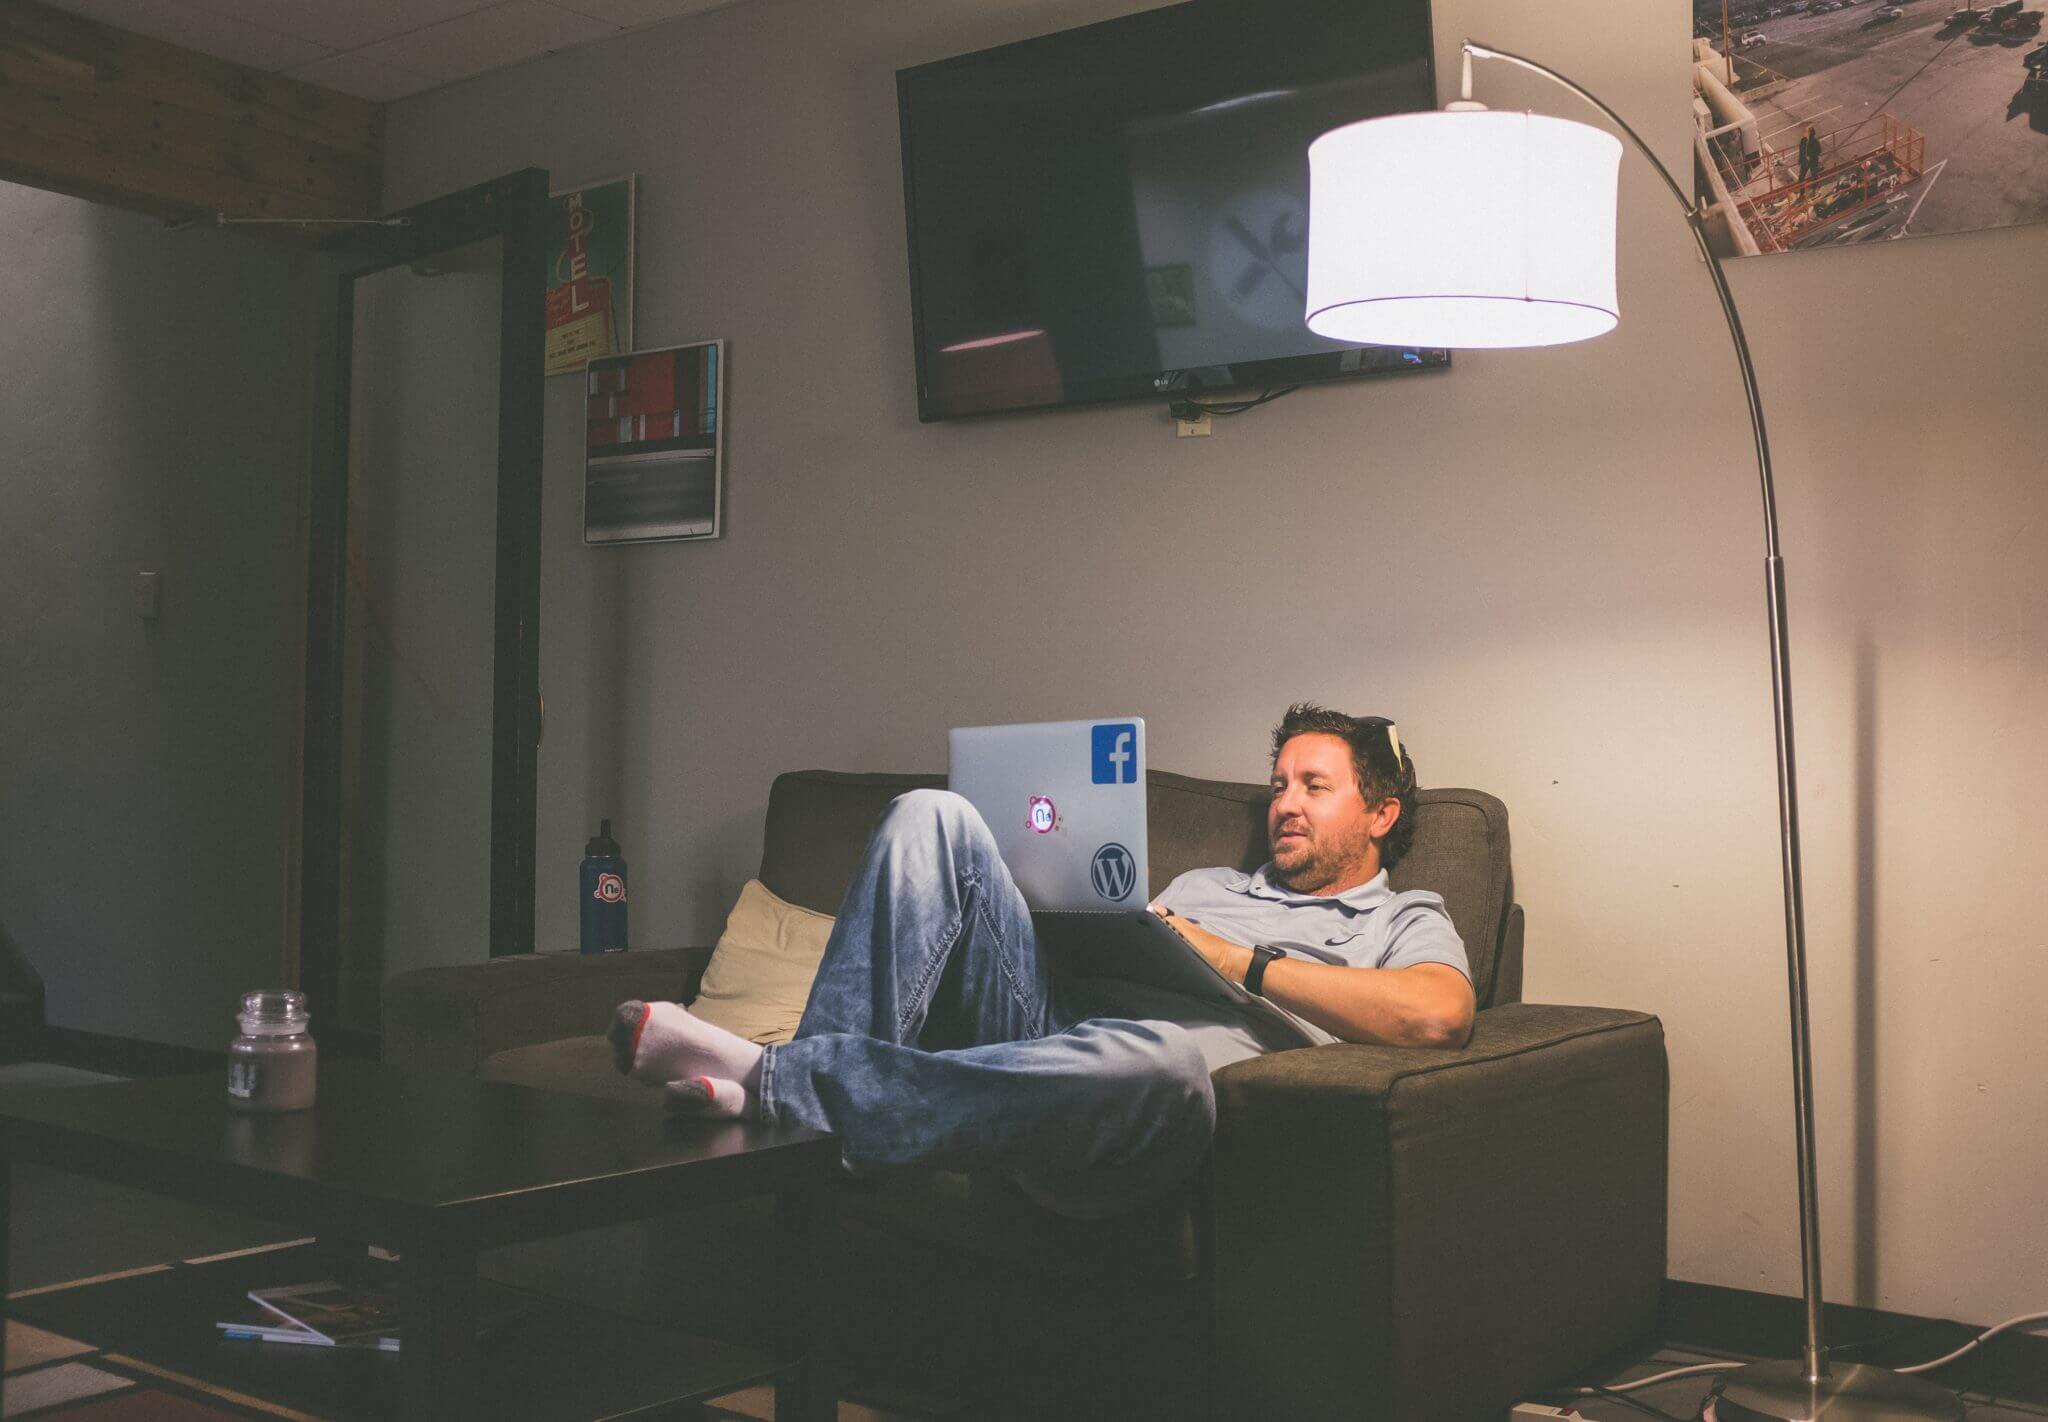 Best Work-From-Home Jobs: How to Land Your Next Remote Gig